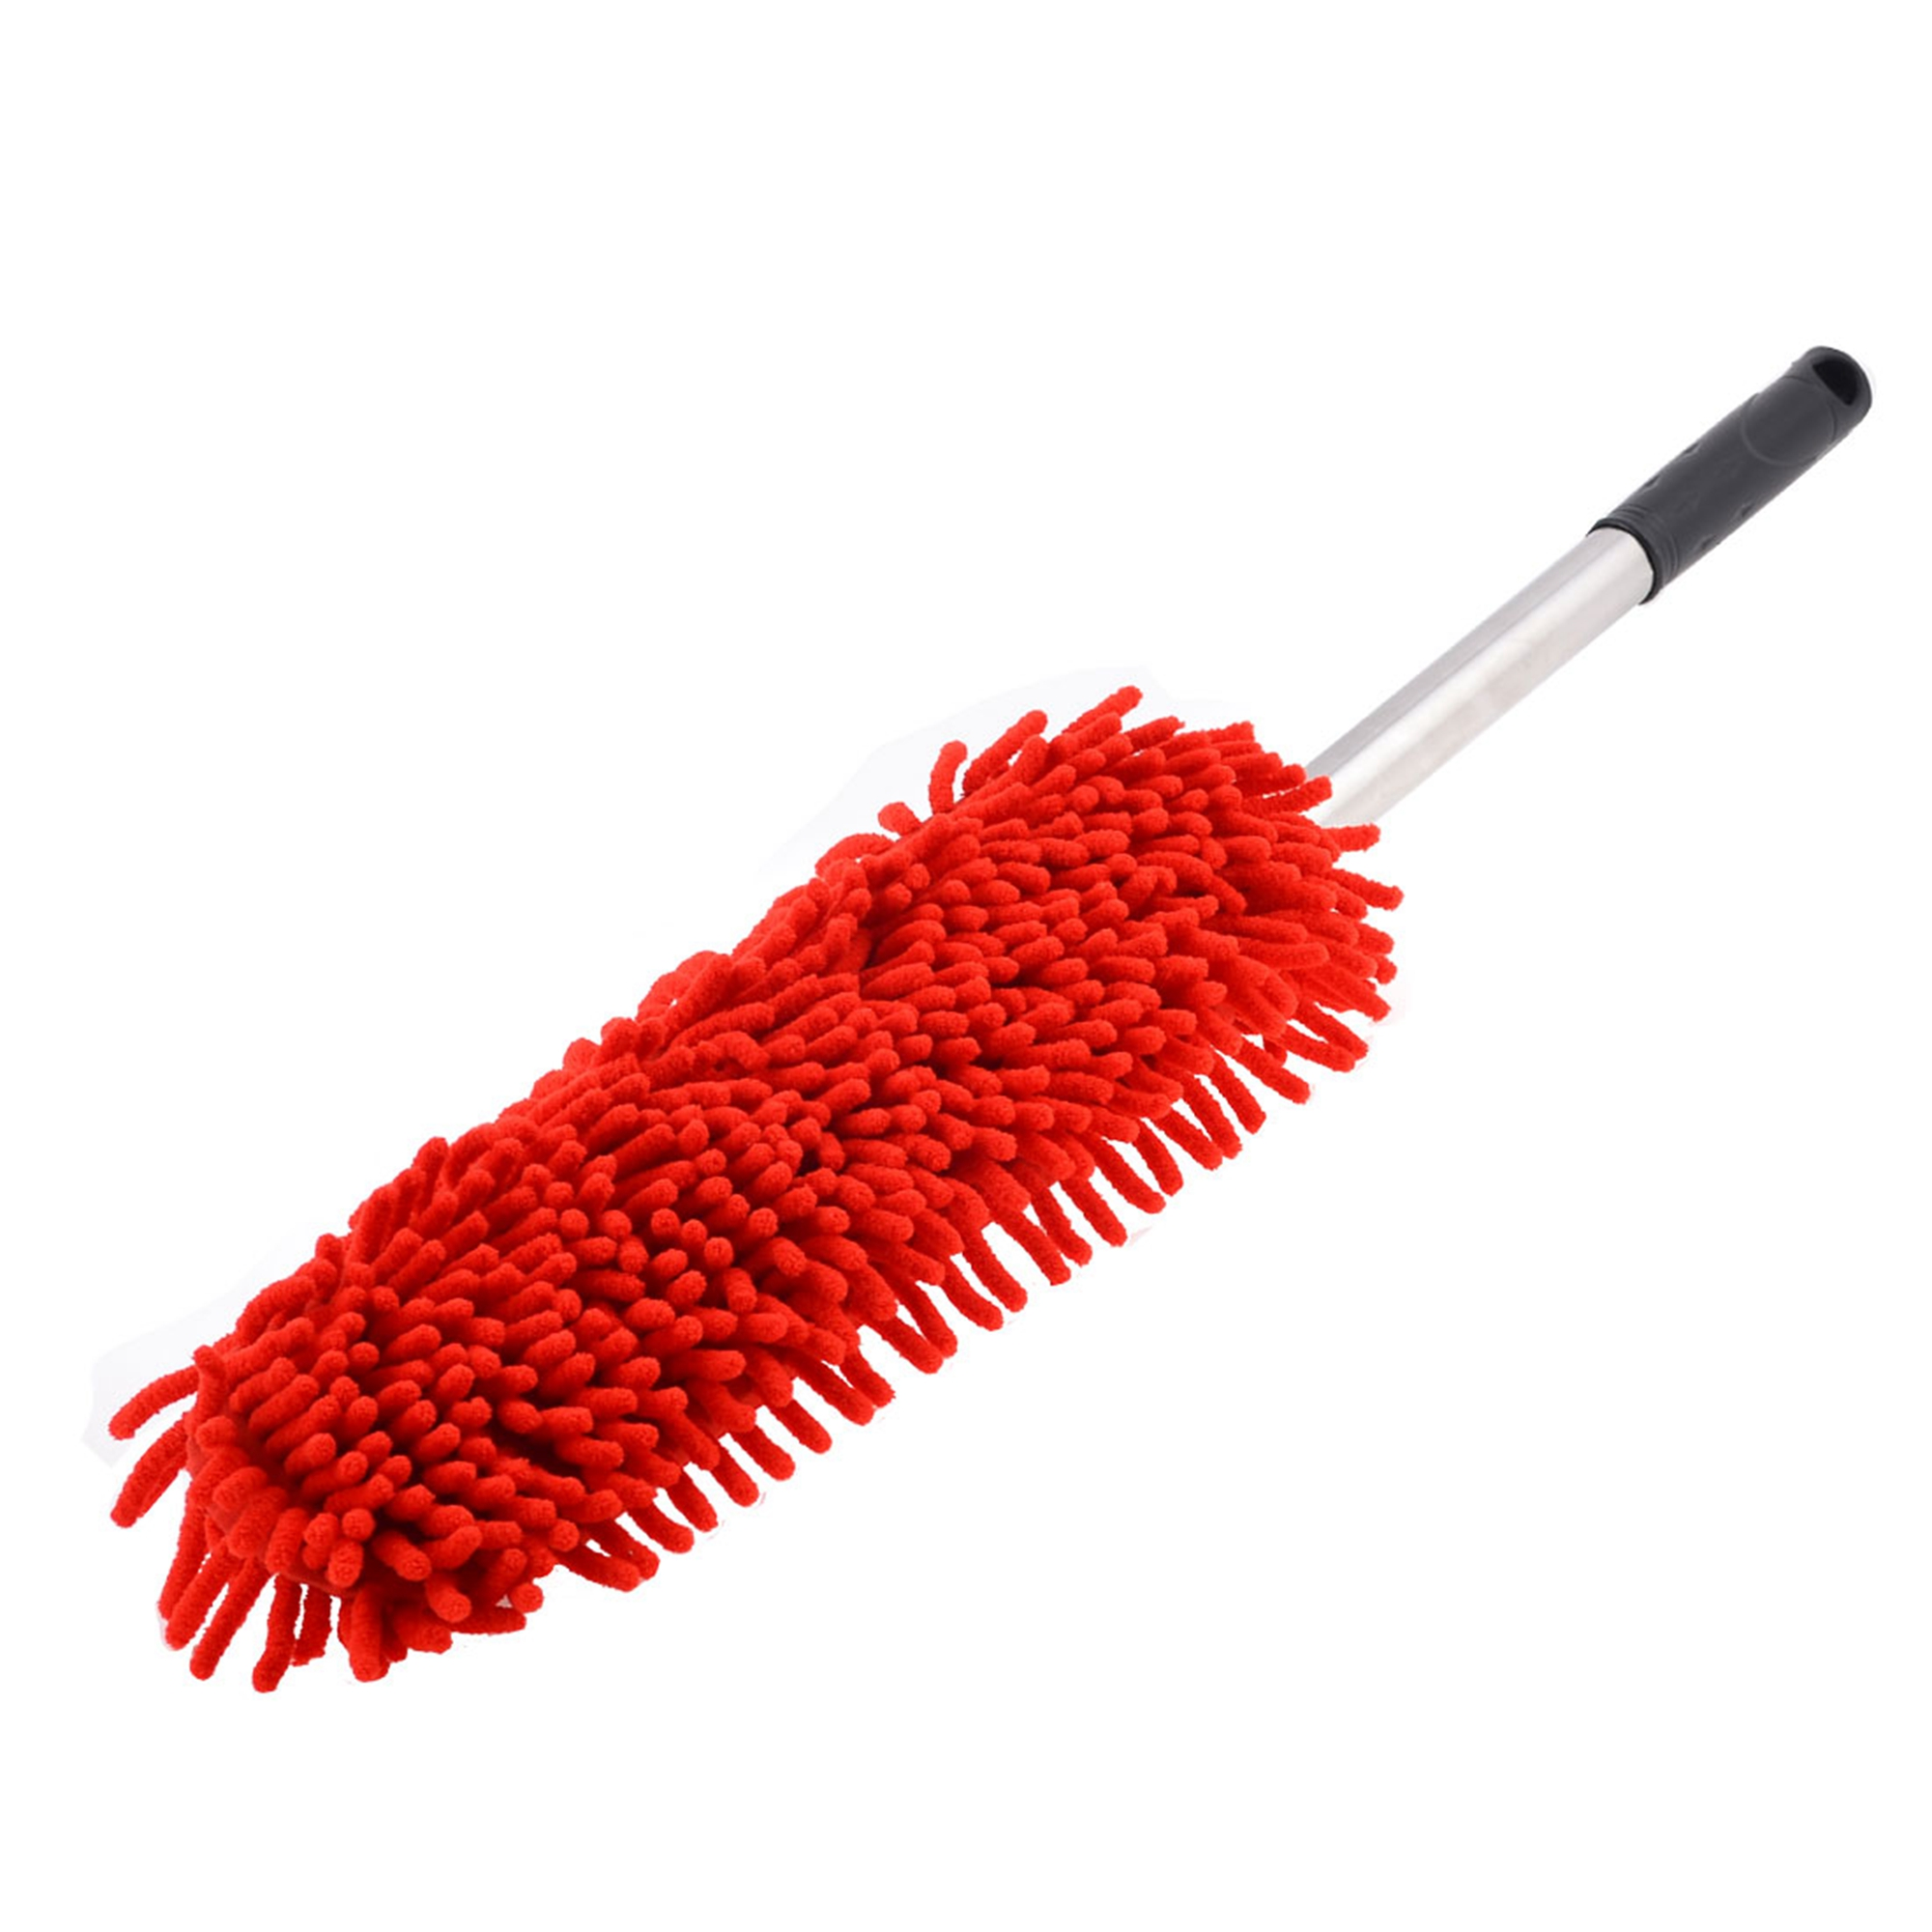 Stainless Steel Shaft Red Replaceable Microfiber Clean Car Duster Brush